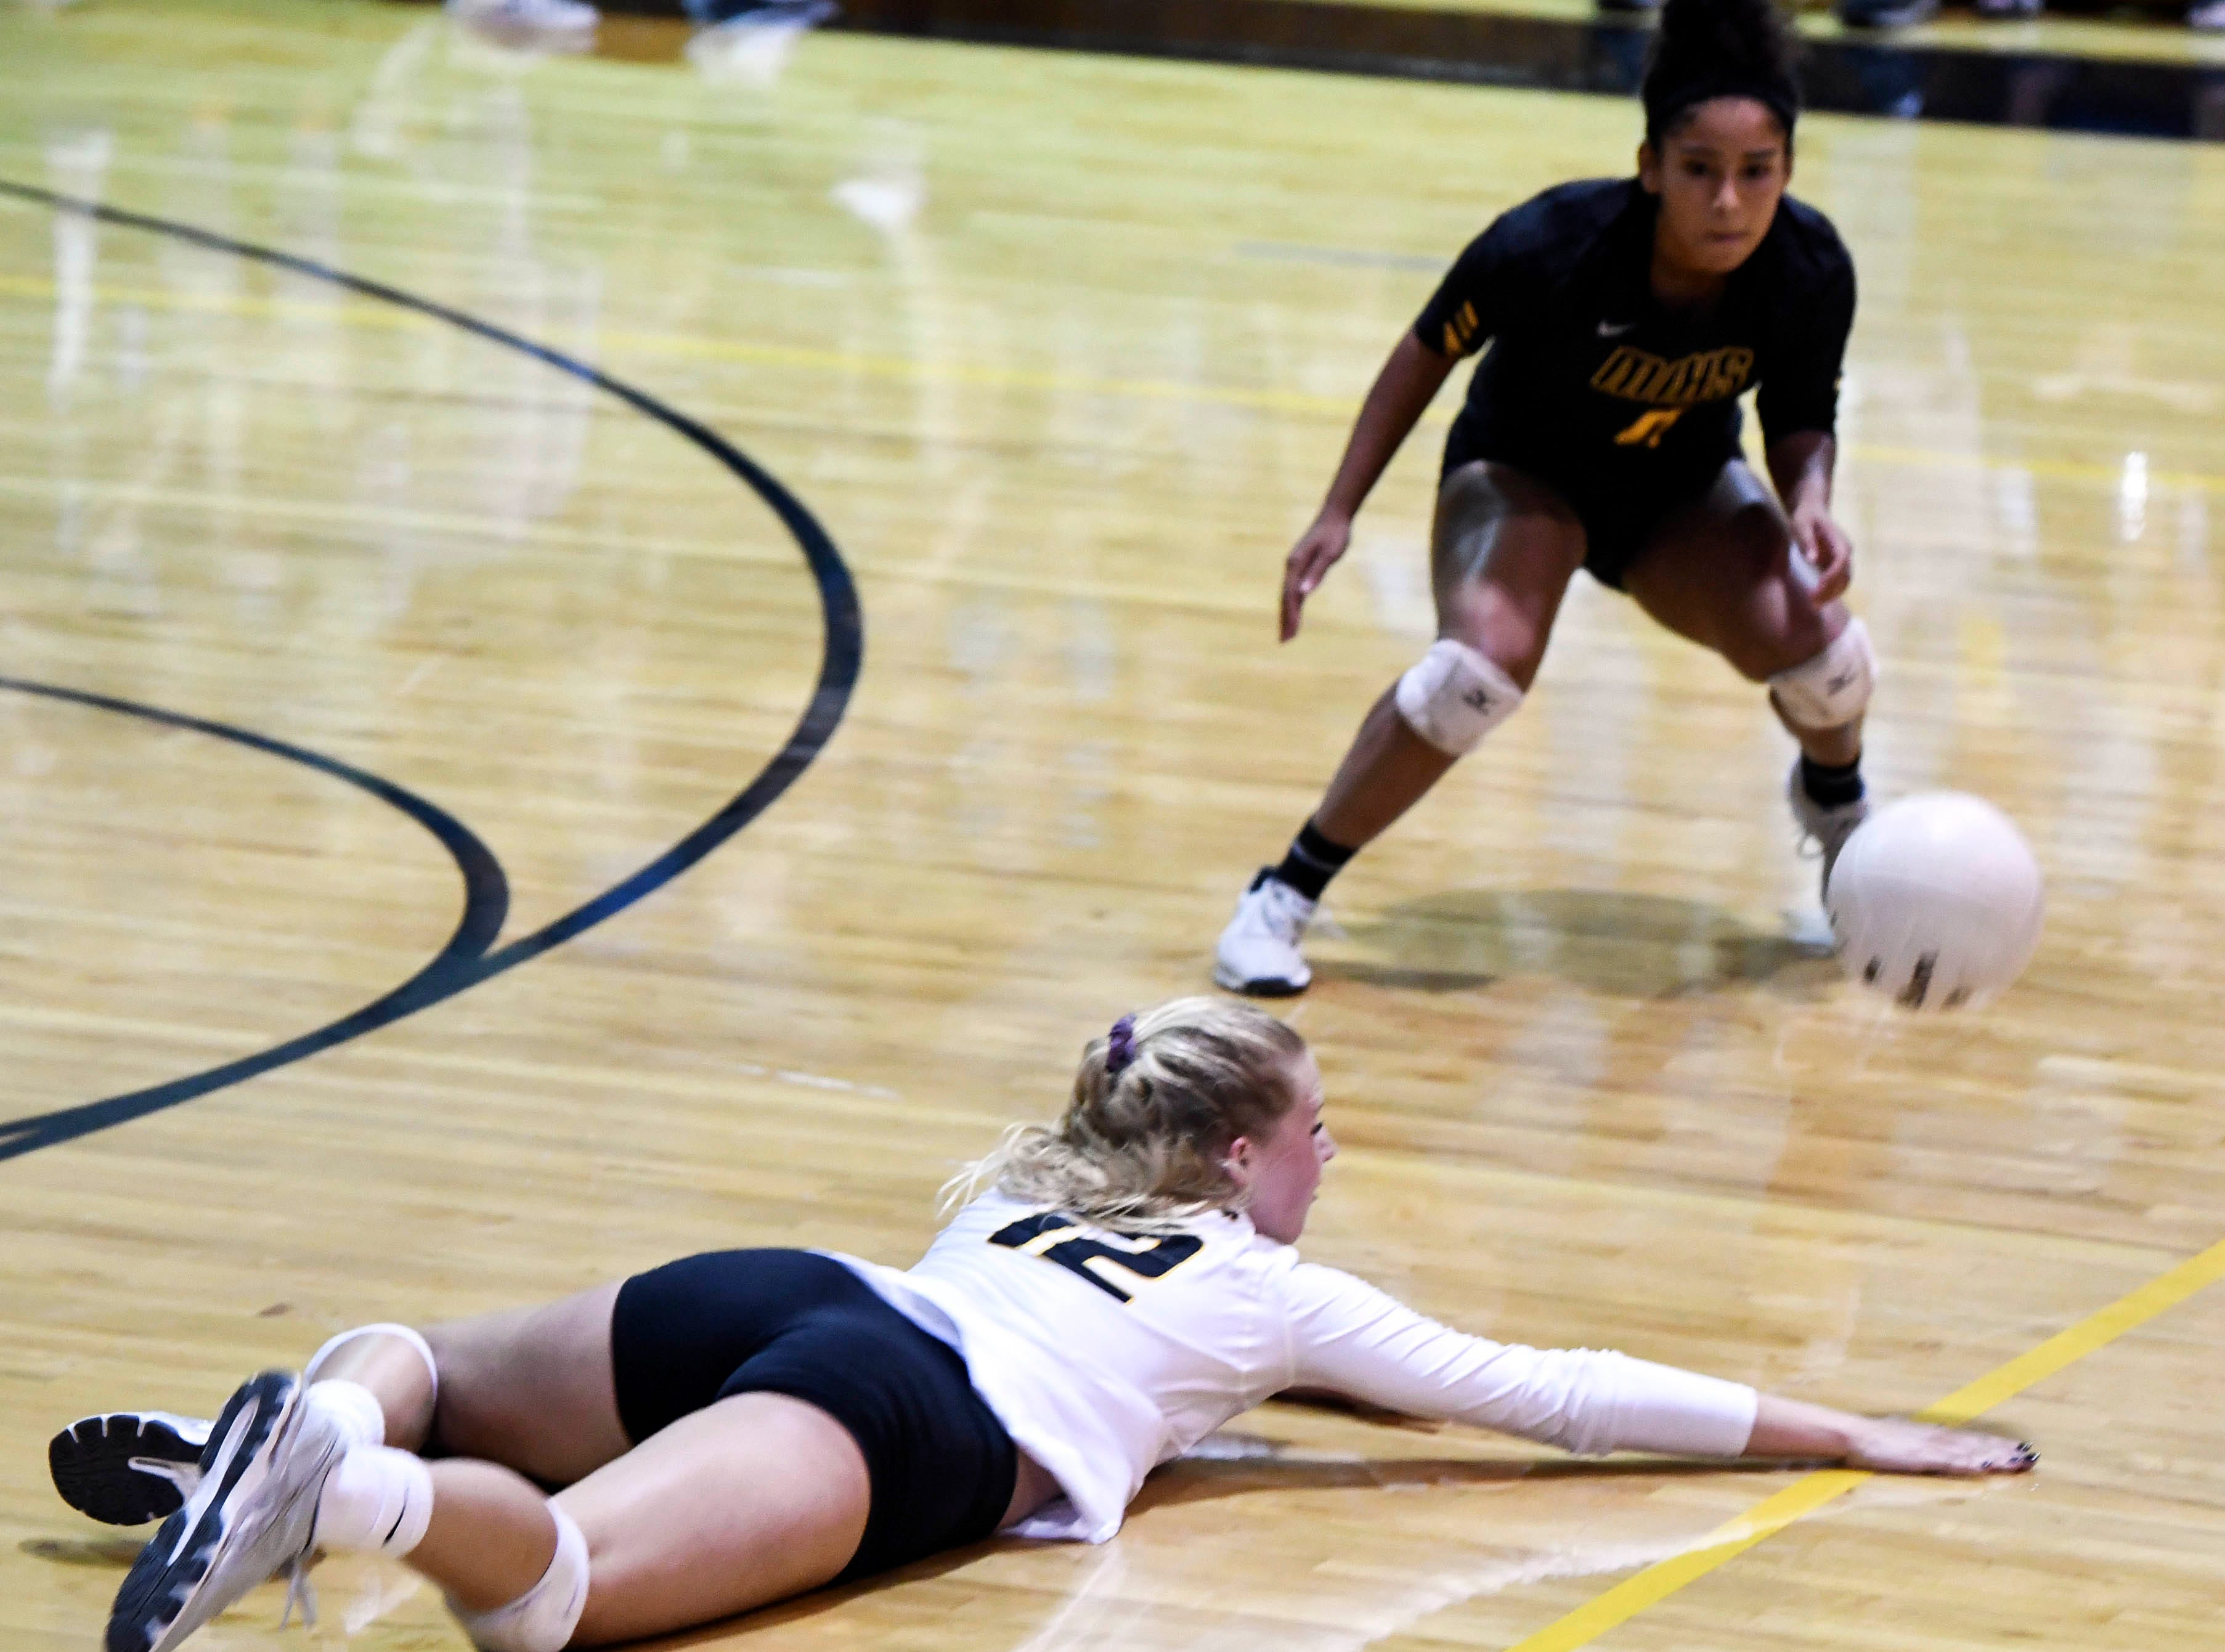 Bobbie Jo Schwantz of Merritt Island dives for a ball during Tuesday regional semifinal against Bishop Moore.